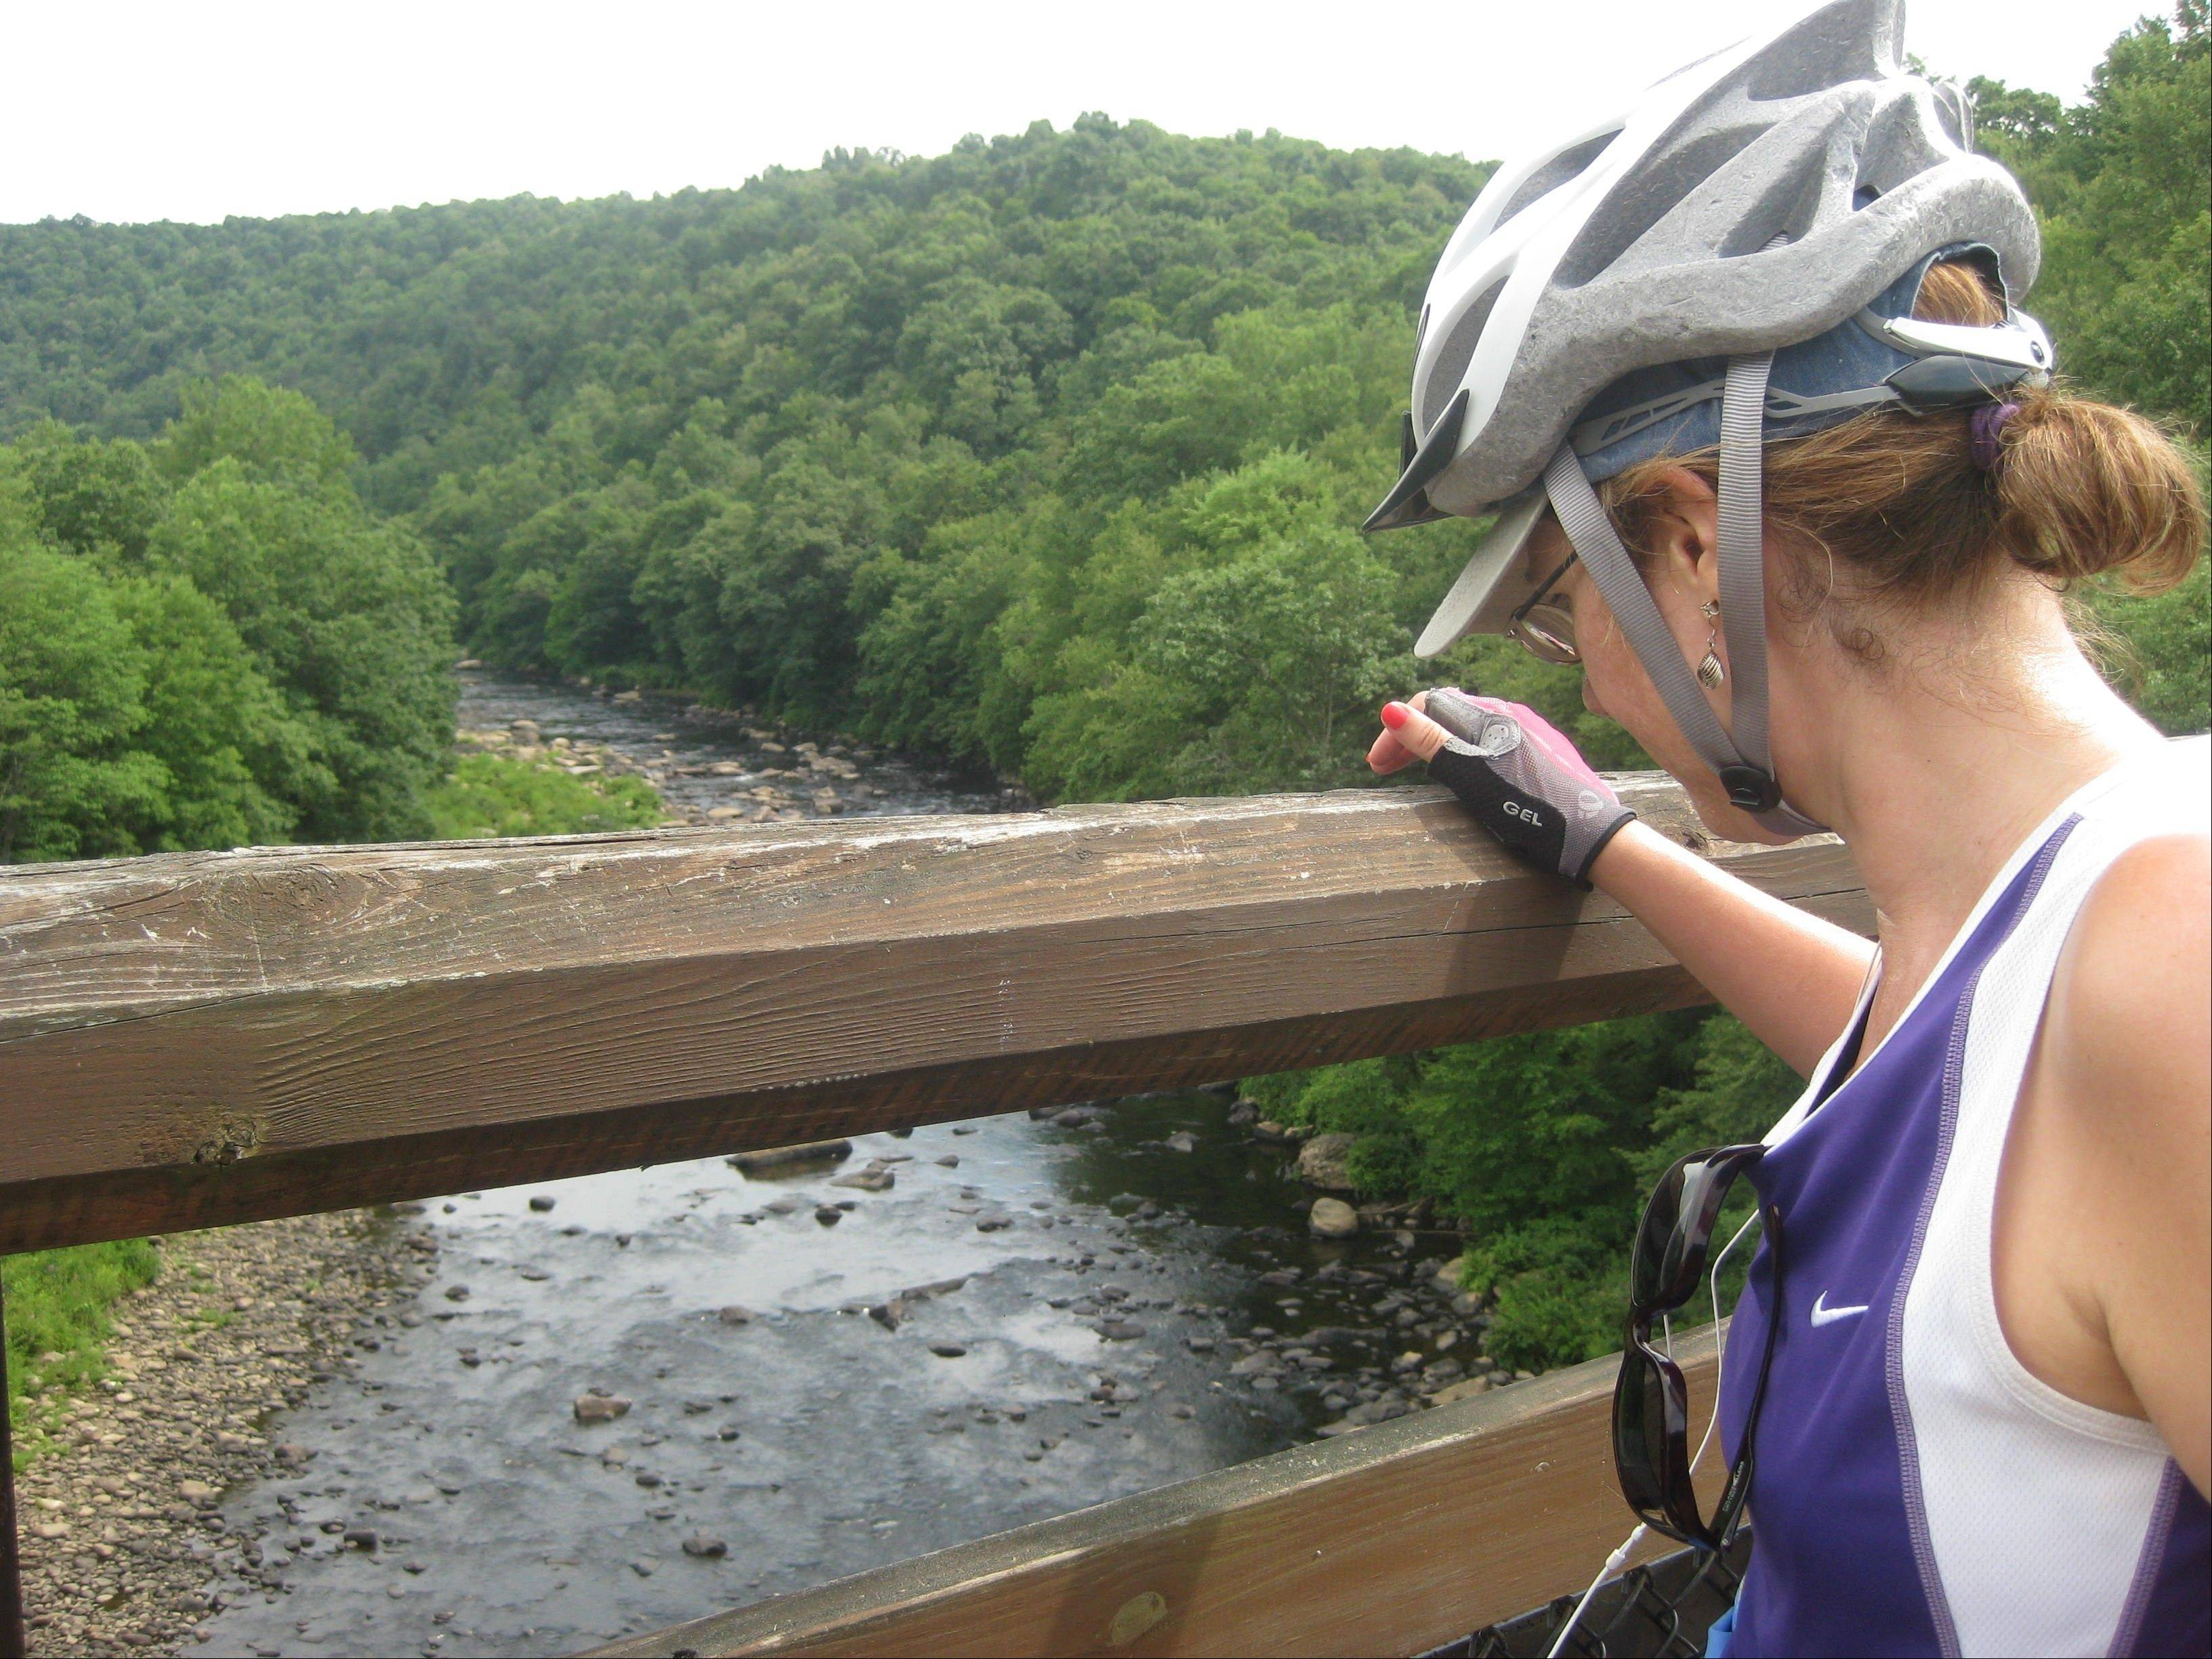 A bicyclist takes in the river view approaching Ohiopyle, Pa., on the Great Allegheny Passage.